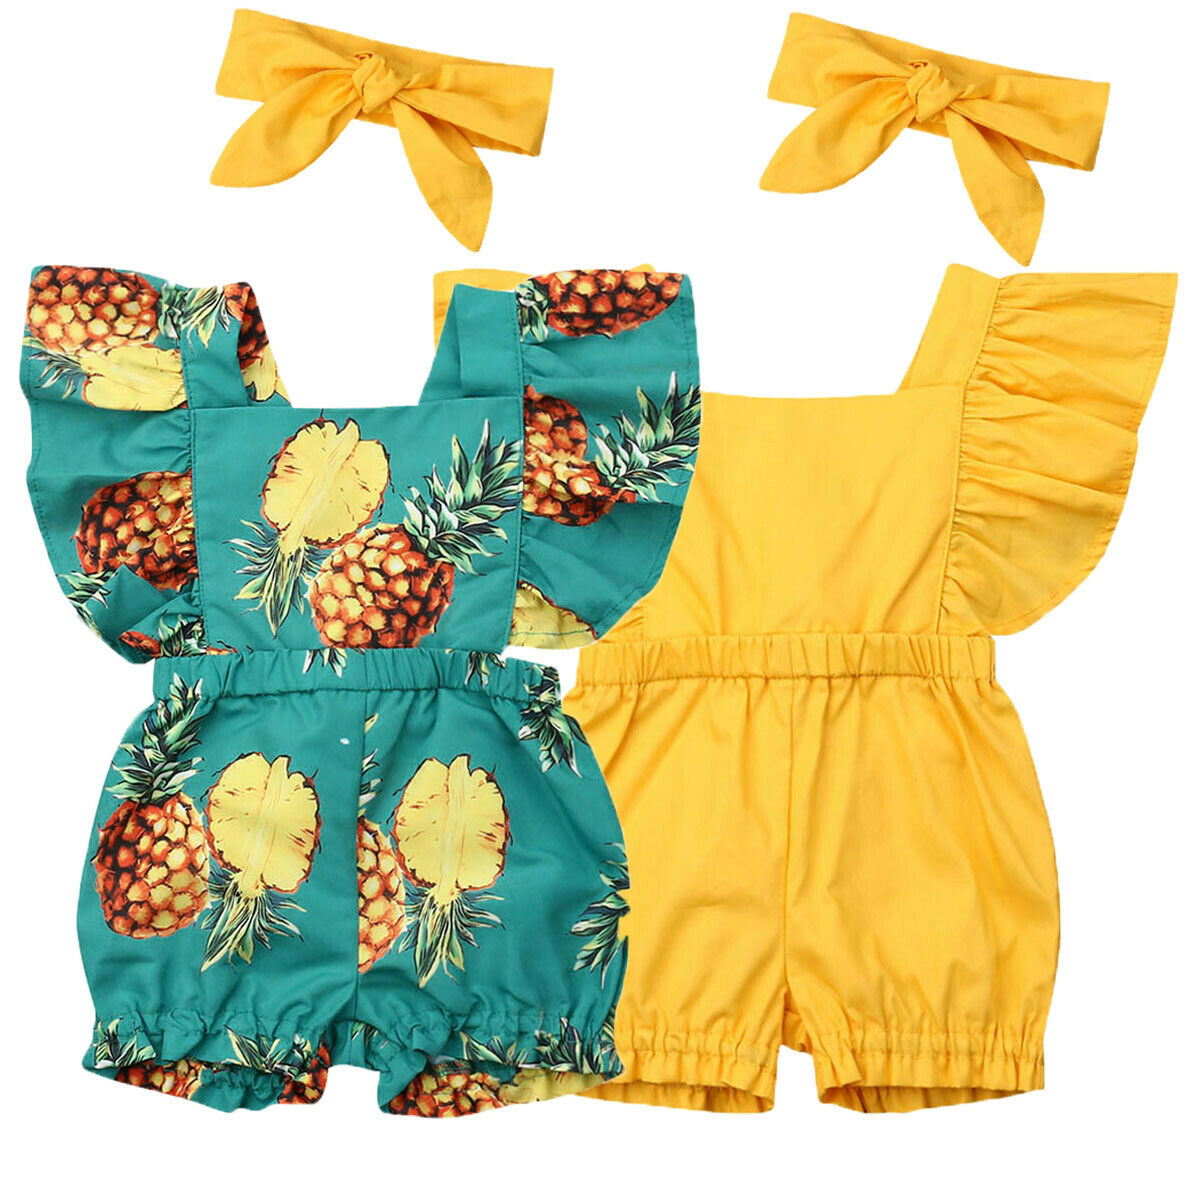 09447855a413e Newborn Baby Girl Clothes Fly Sleeve Ruffle Romper Jumpsuit Headband 2PCS  Outfits Set ~ Hot Sale June 2019